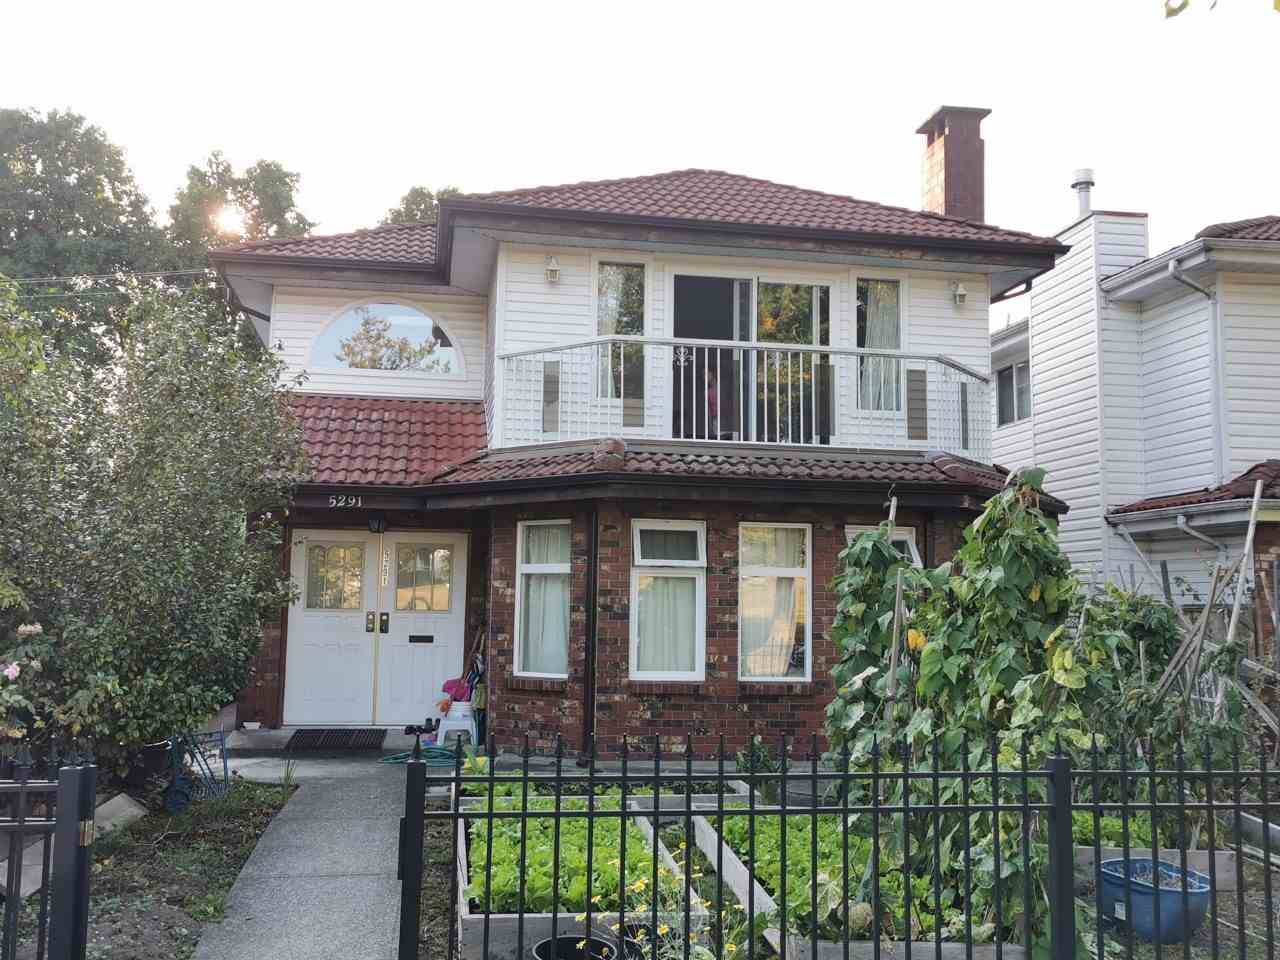 5291 WALES STREET - Collingwood - Vancouver